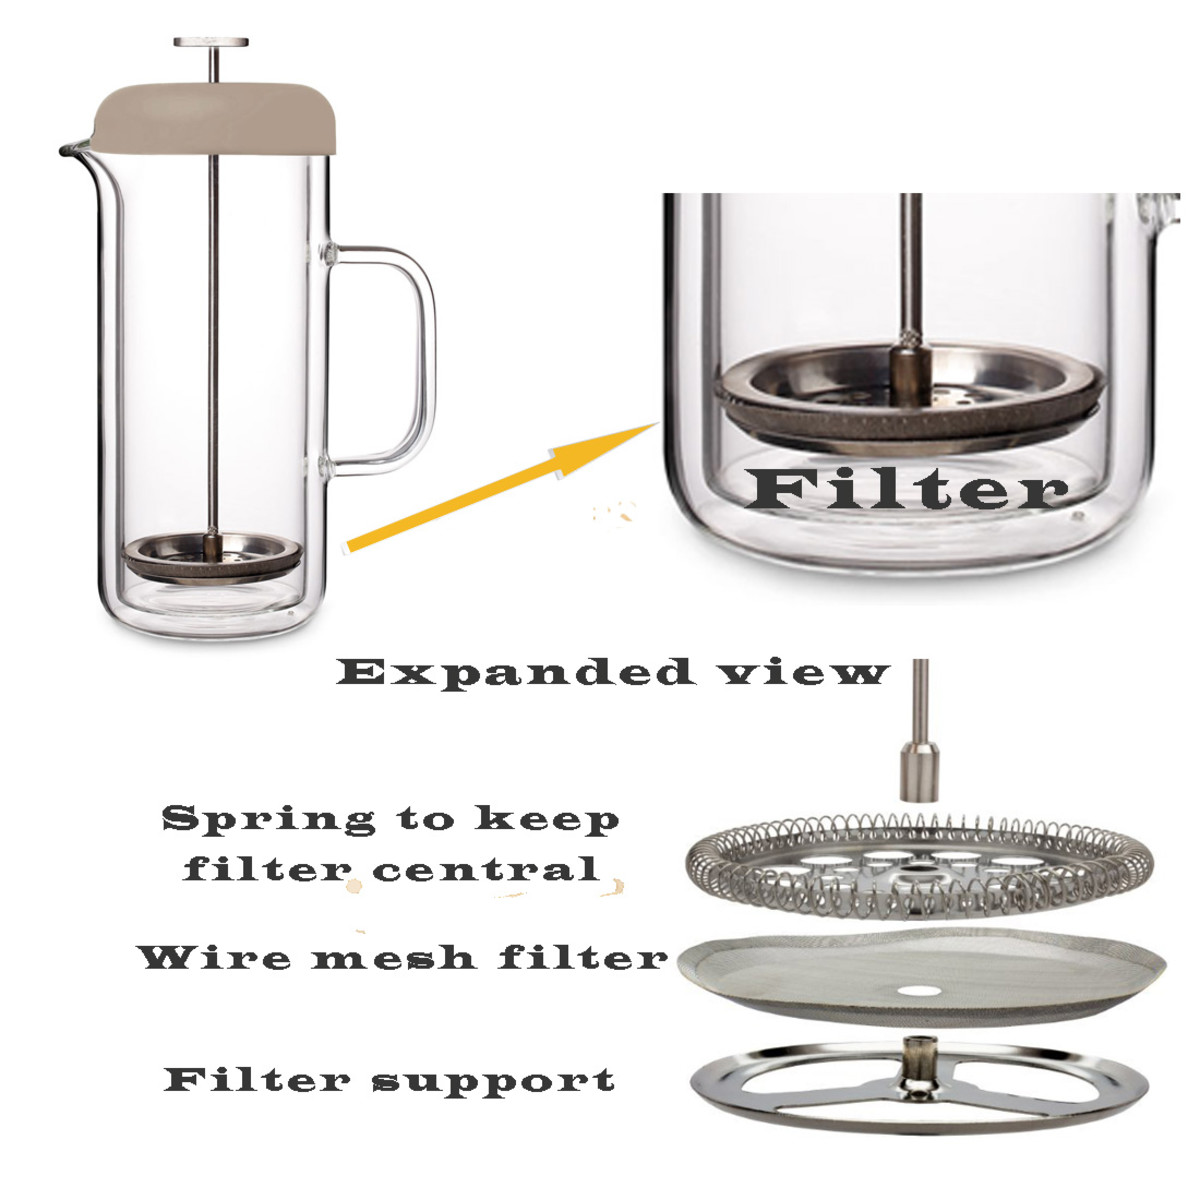 Exploded view of a French press coffee filter.